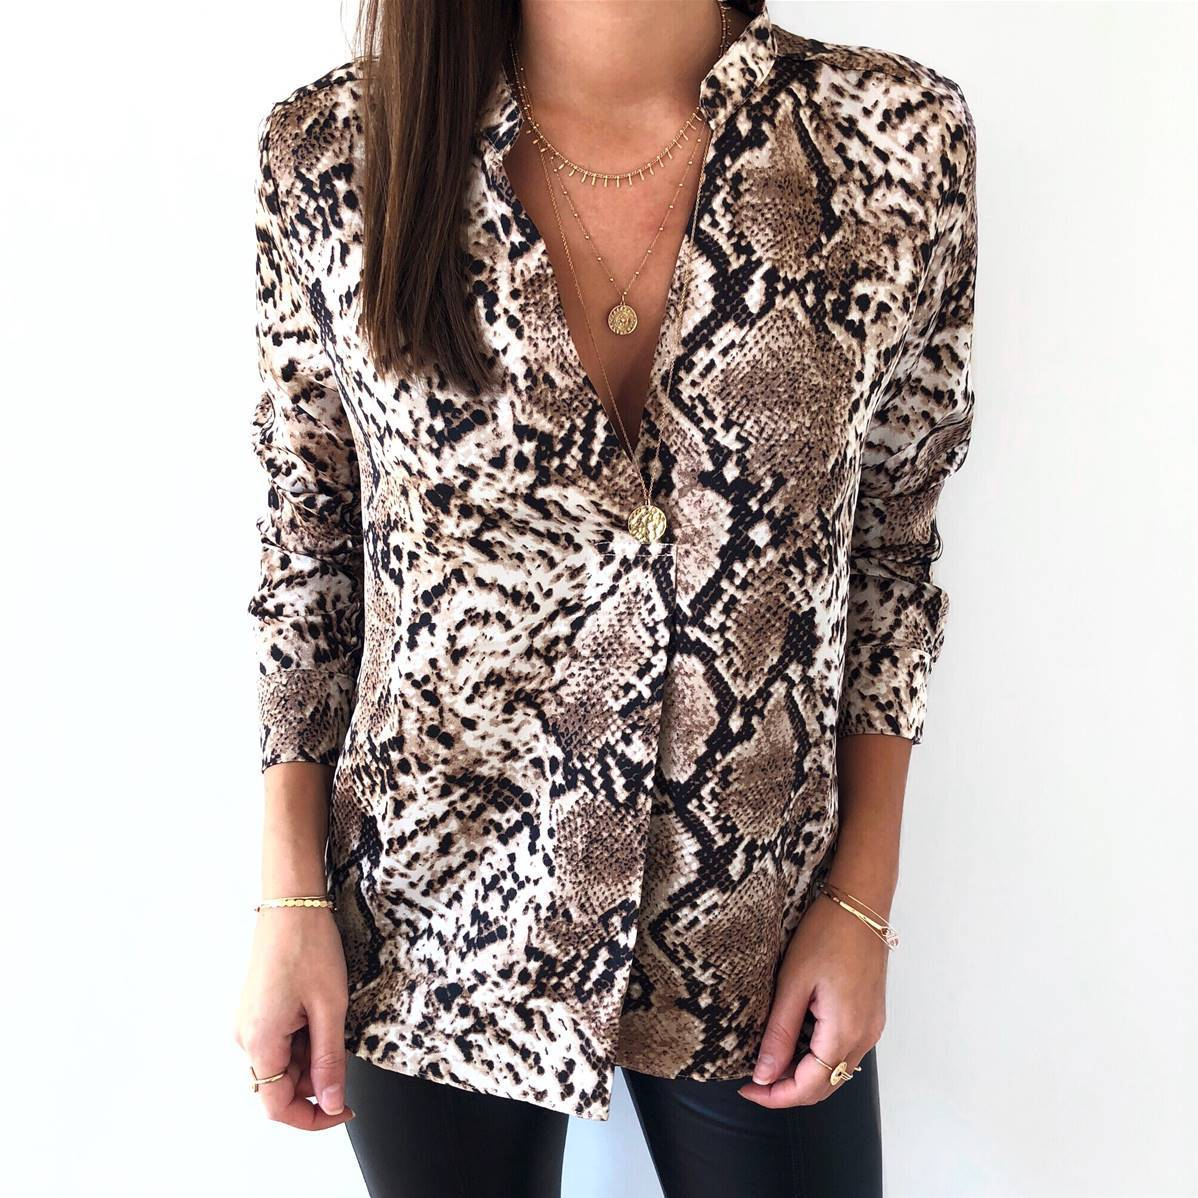 Snake Print Blouse Women 2019 Spring Vintage Slim Shirts Ladies Casual Long Sleeve Stand Collar Single Breasted Tops Plus Size in Blouses amp Shirts from Women 39 s Clothing